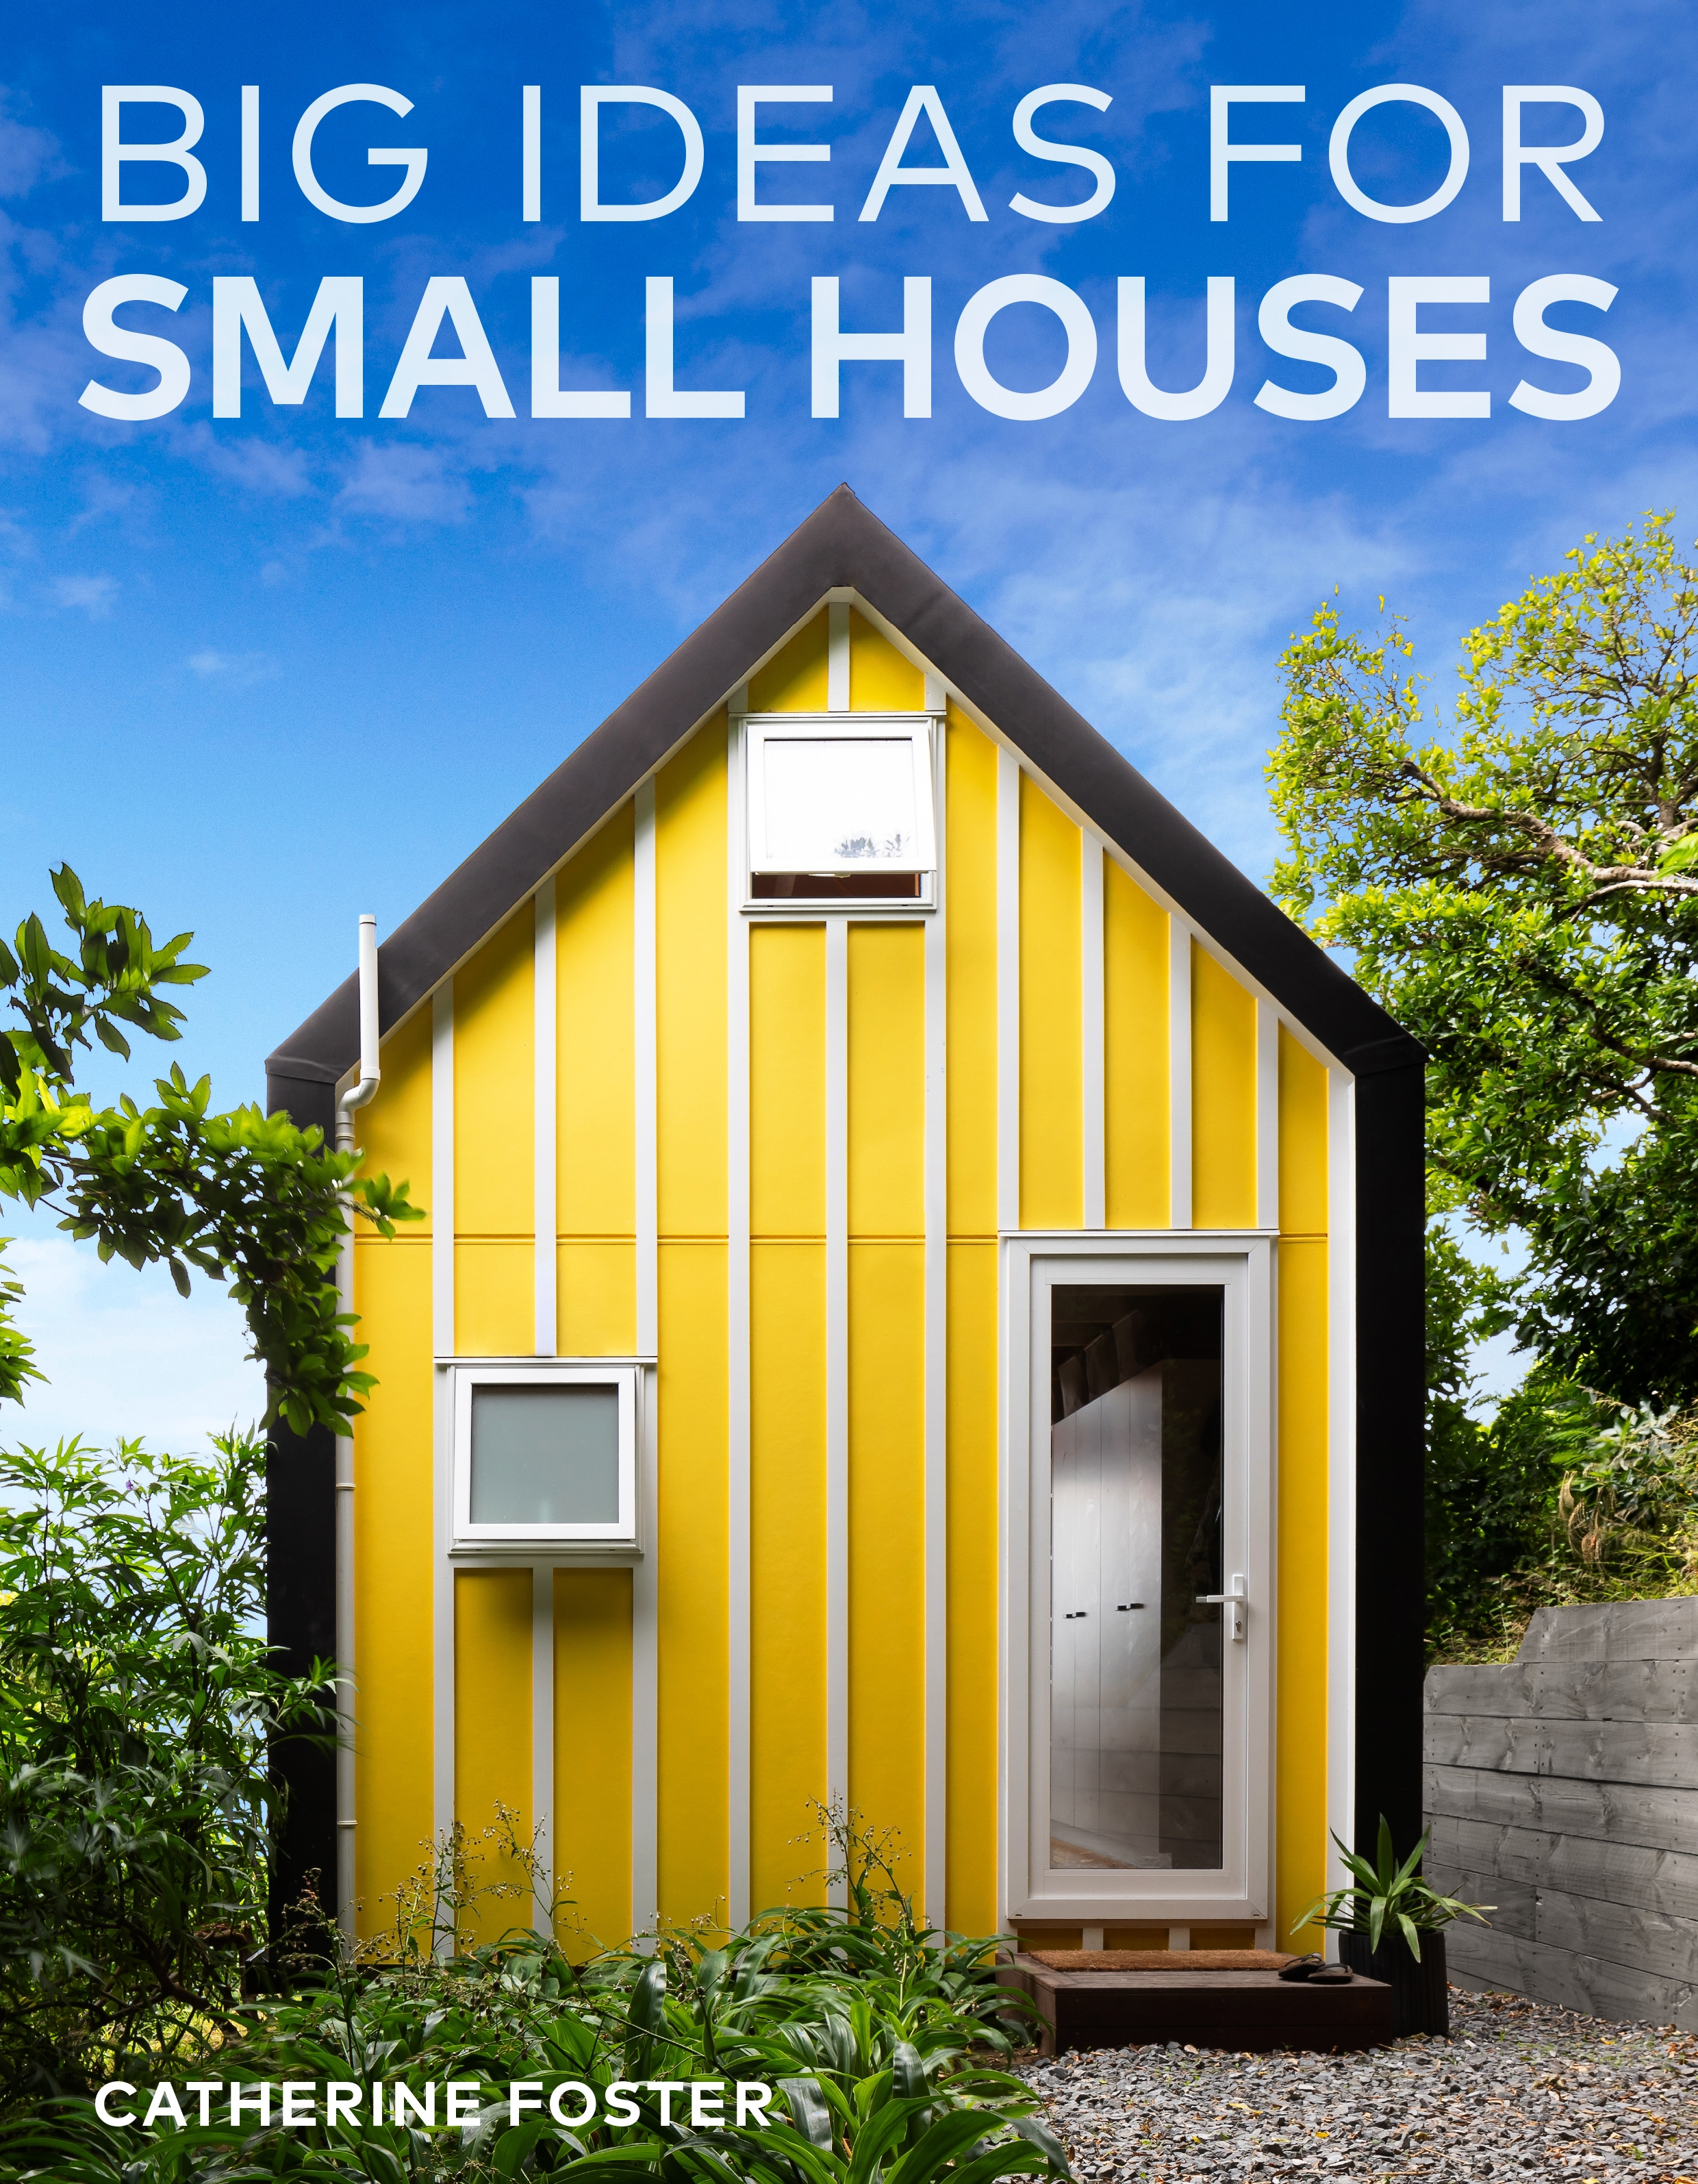 Small House Pictures Images Fresh Big Ideas for Small Houses by Catherine Foster Penguin